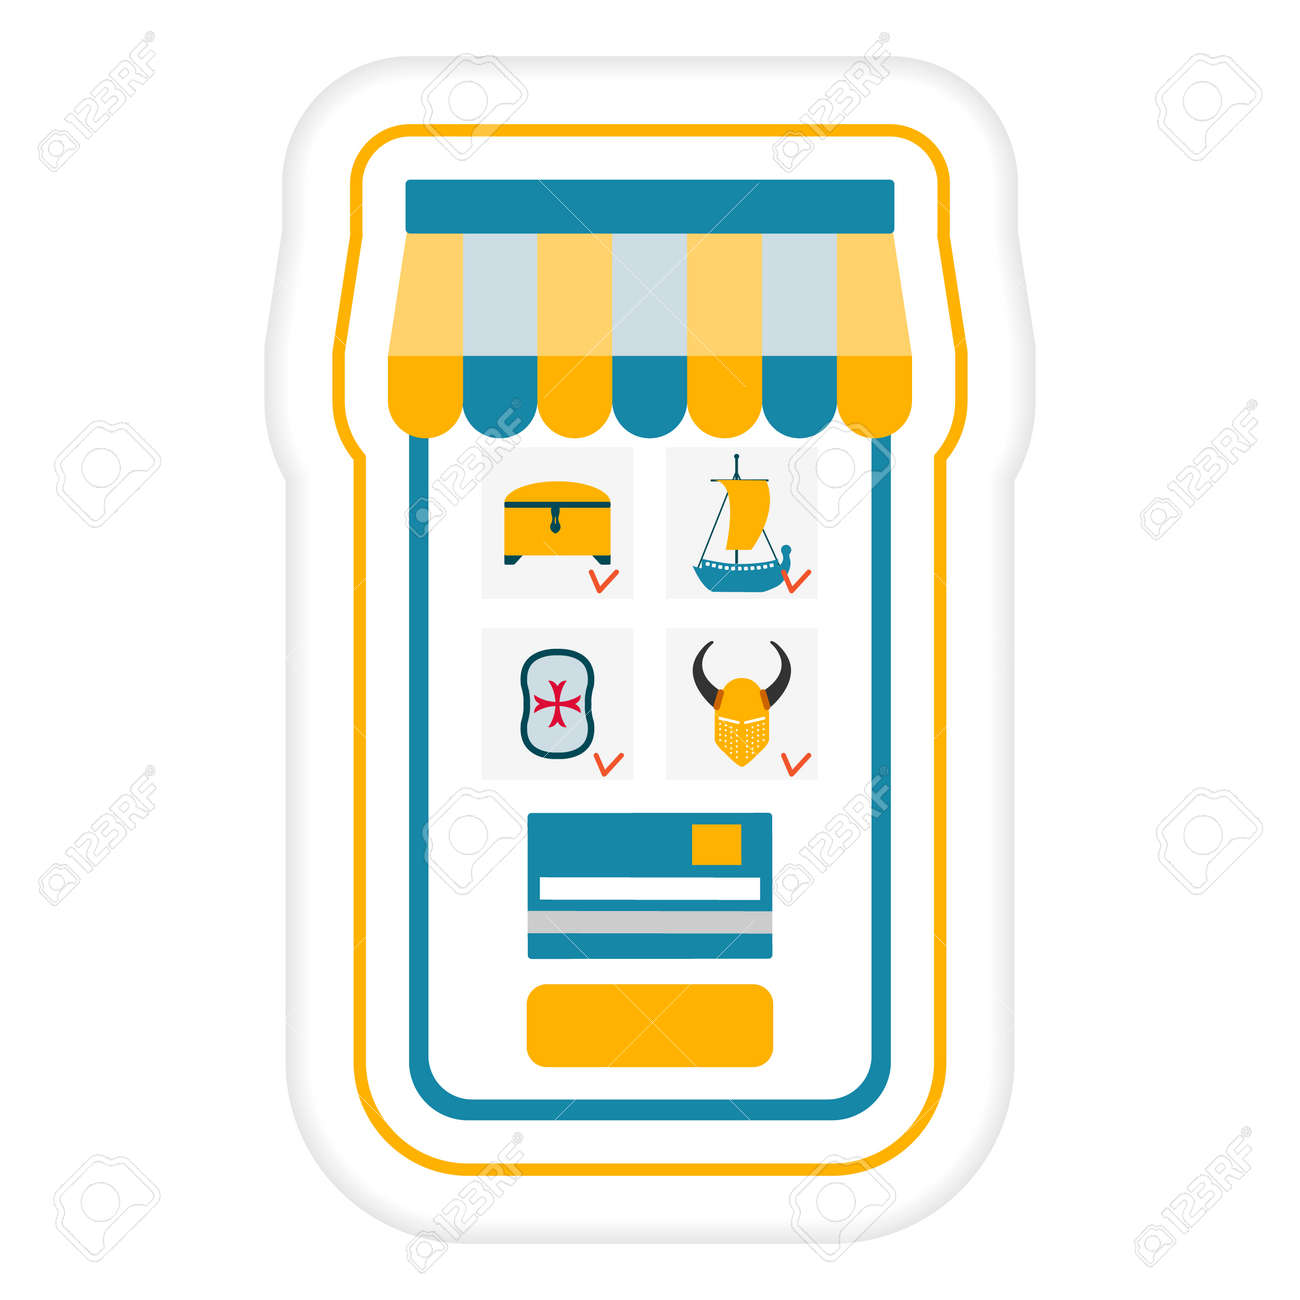 Vector illustration Sticker Online order. Online ordering toys by cellphone. Delivery at home. Happy childhood. Shopping Sale Purchase Design for print - 170178370